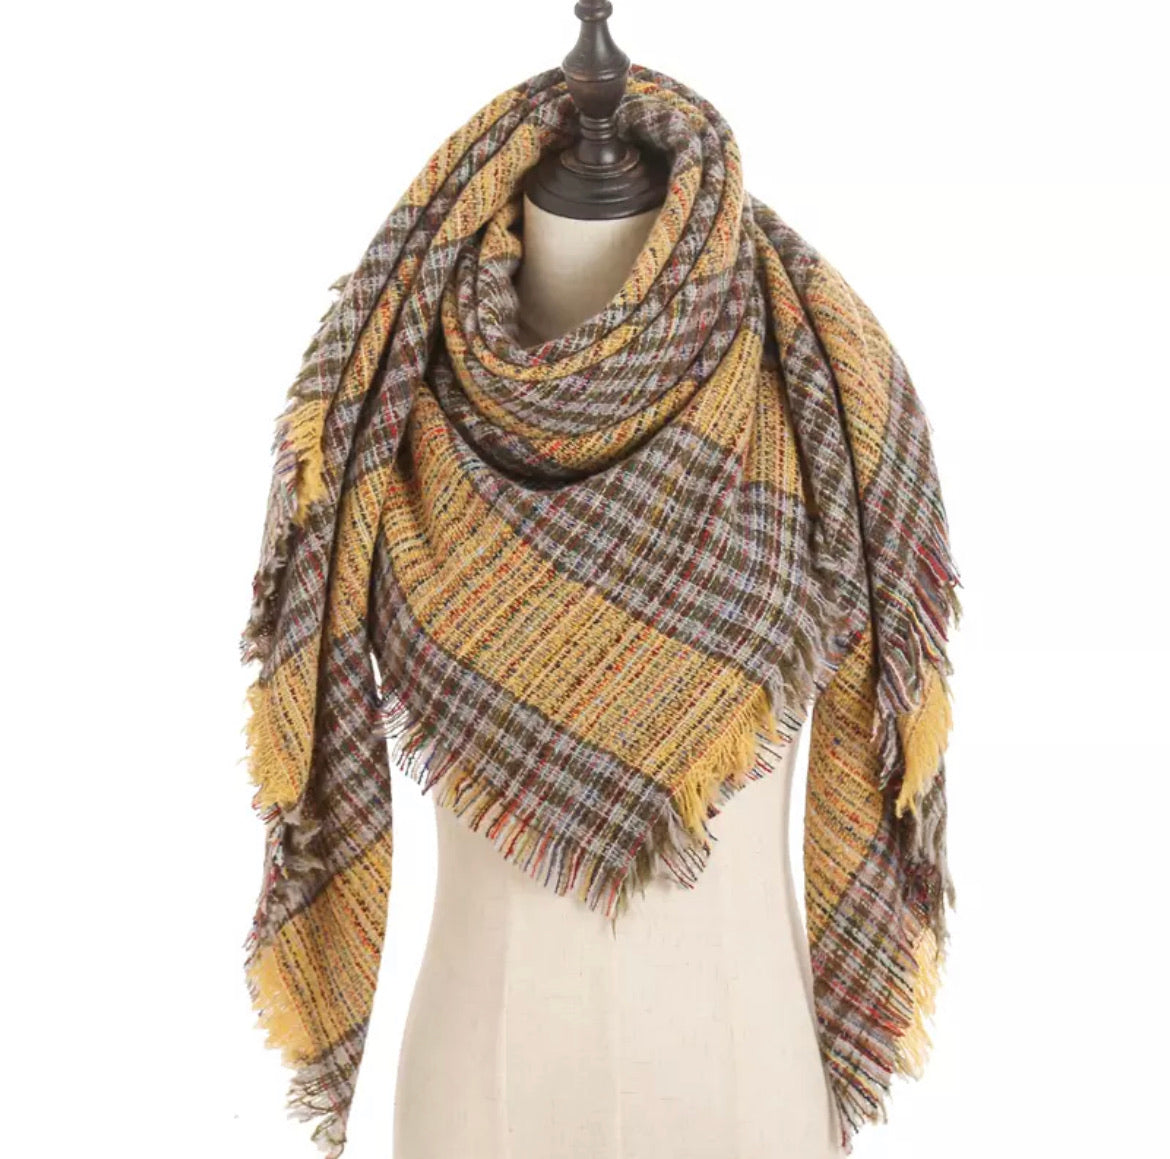 Kaleidoscope Mustard Olive Gray Stripe Plaid Triangle Blanket Scarf